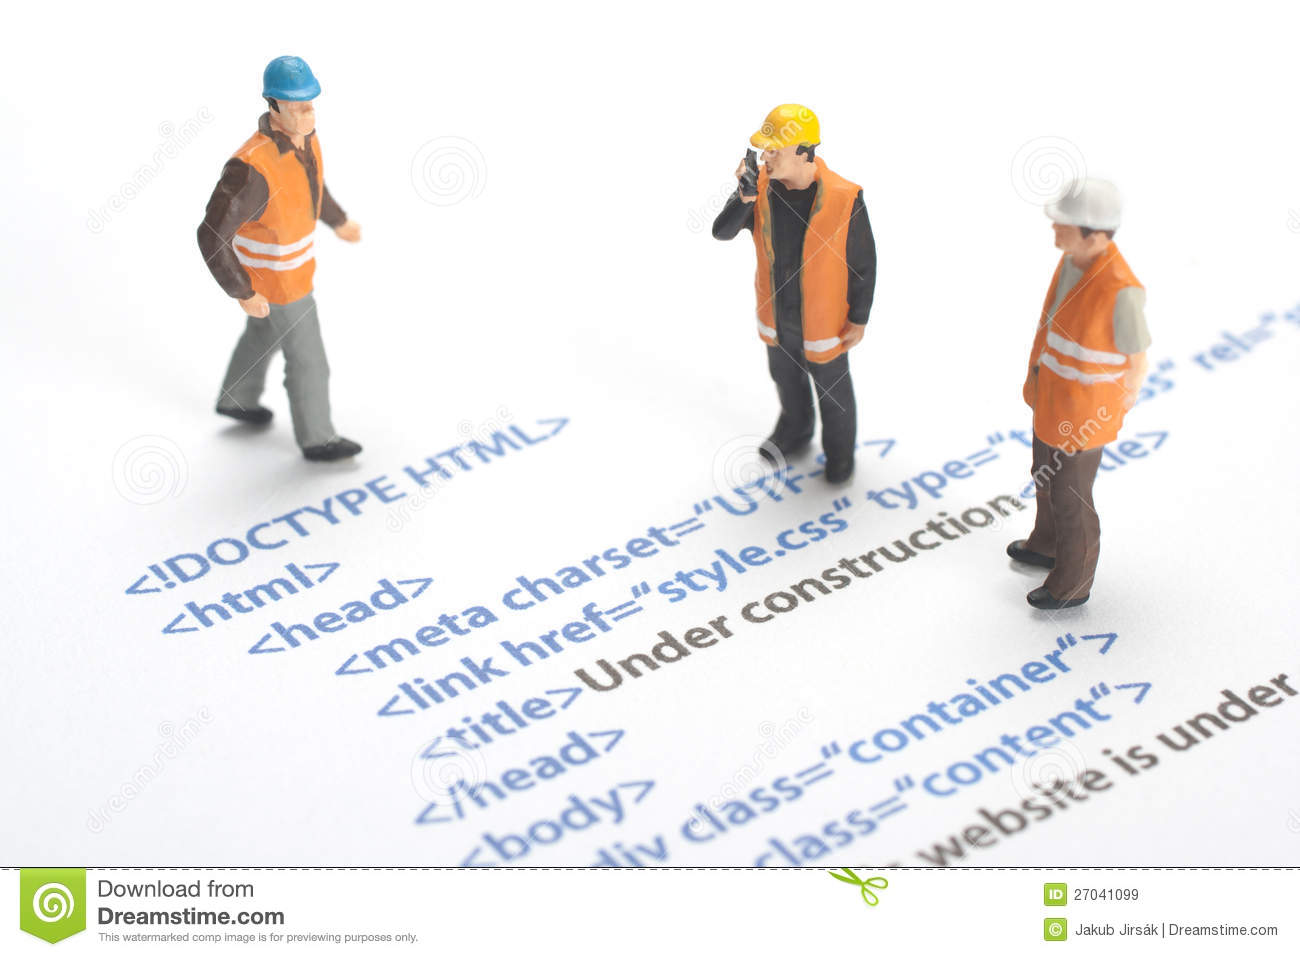 printed html code of website internet page under construction construction worker figurines working on code